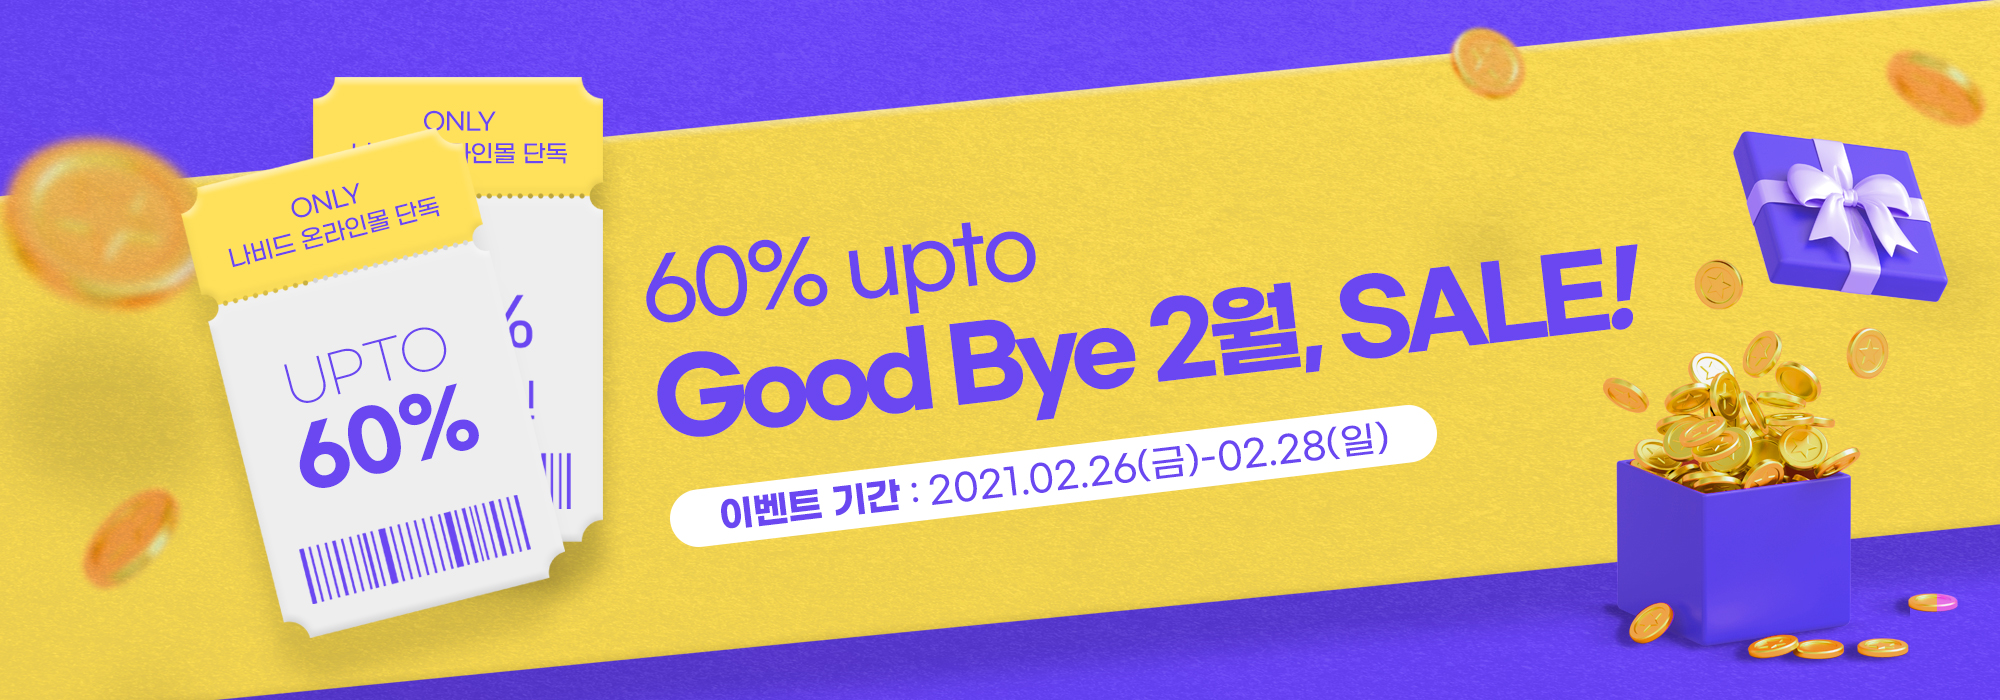 "tt=""60% upto GoodBye 2월!"""